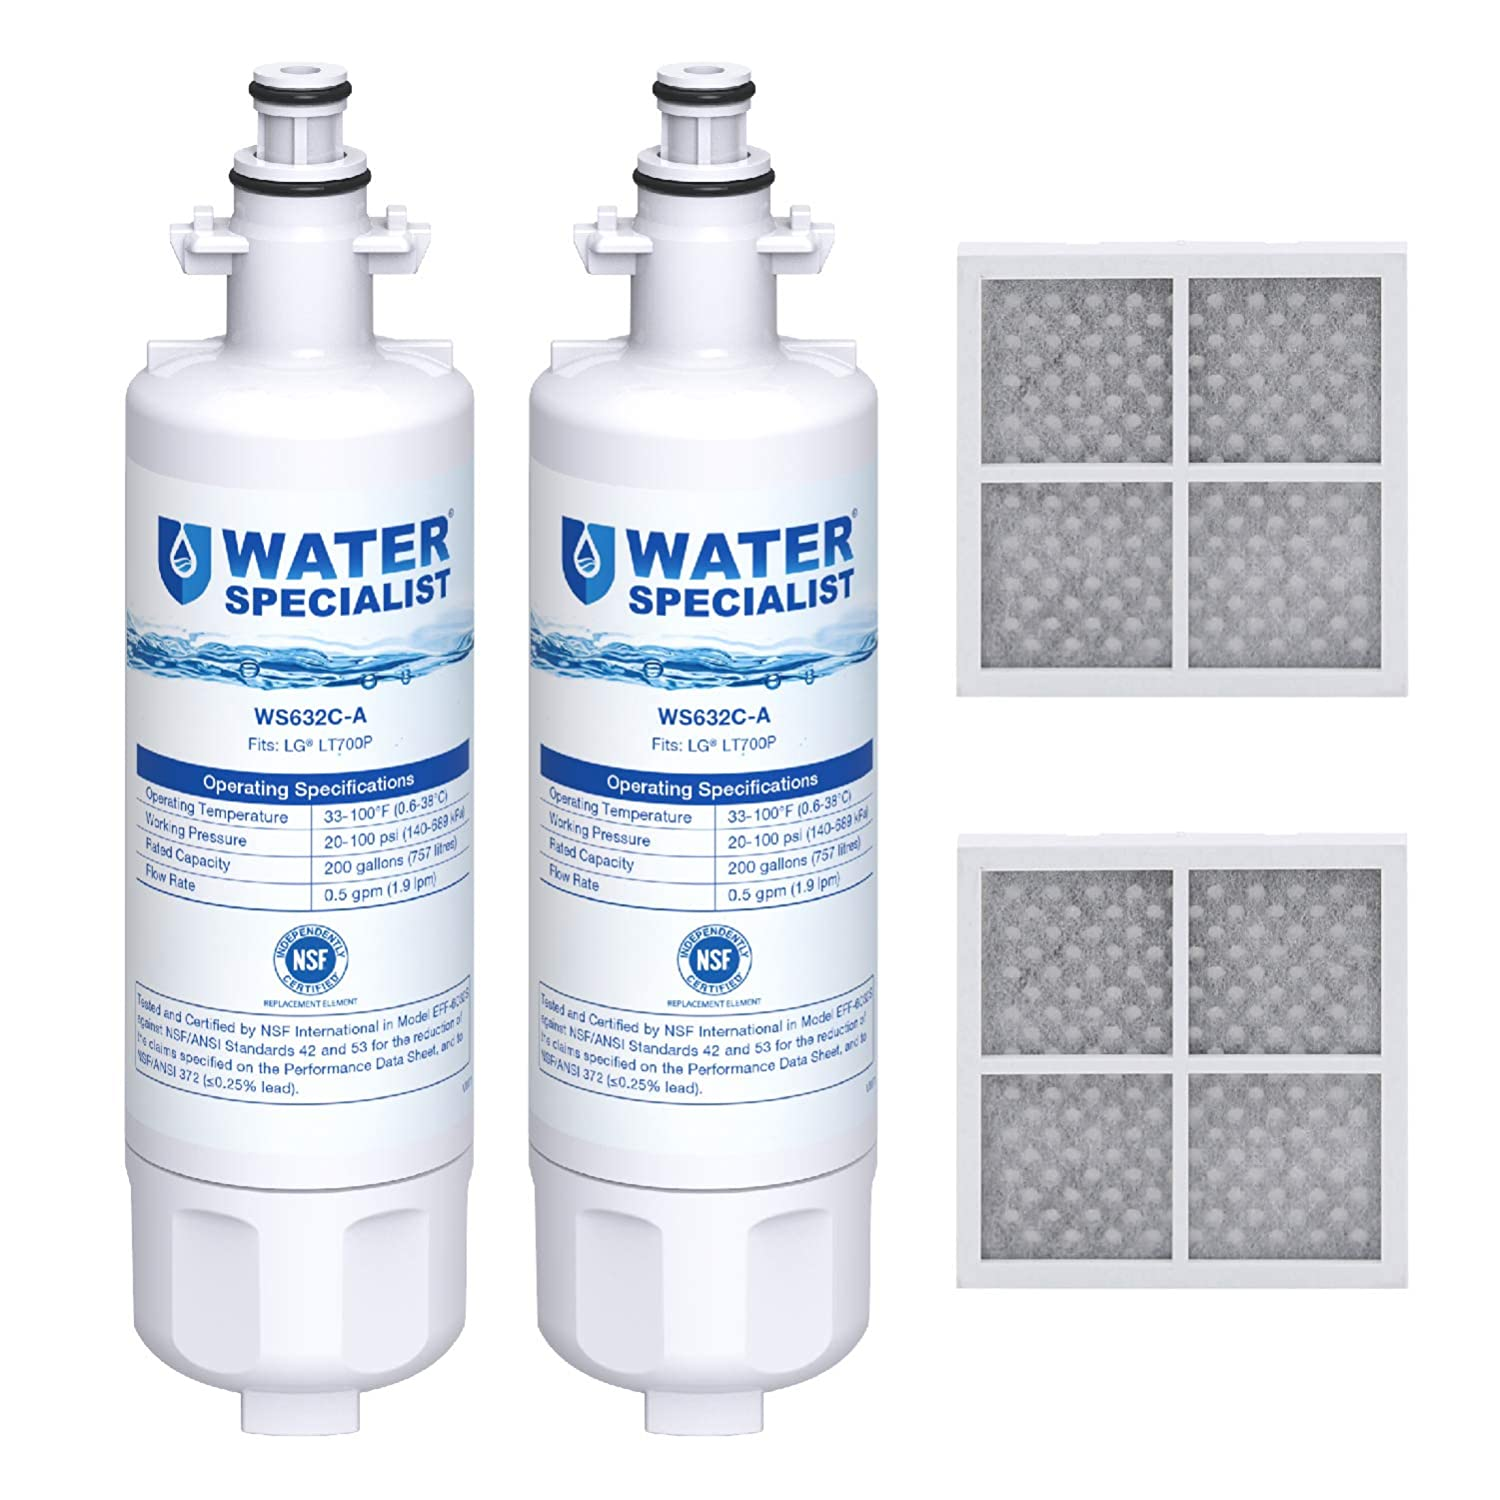 Waterspecialist NSF 53&42 Certified ADQ36006101 Refrigerator Water Filter and Air Filter, Compatible with LG LT700P, Kenmore 9690, 46-9690, ADQ36006102 and LT120F (Pack of 2)